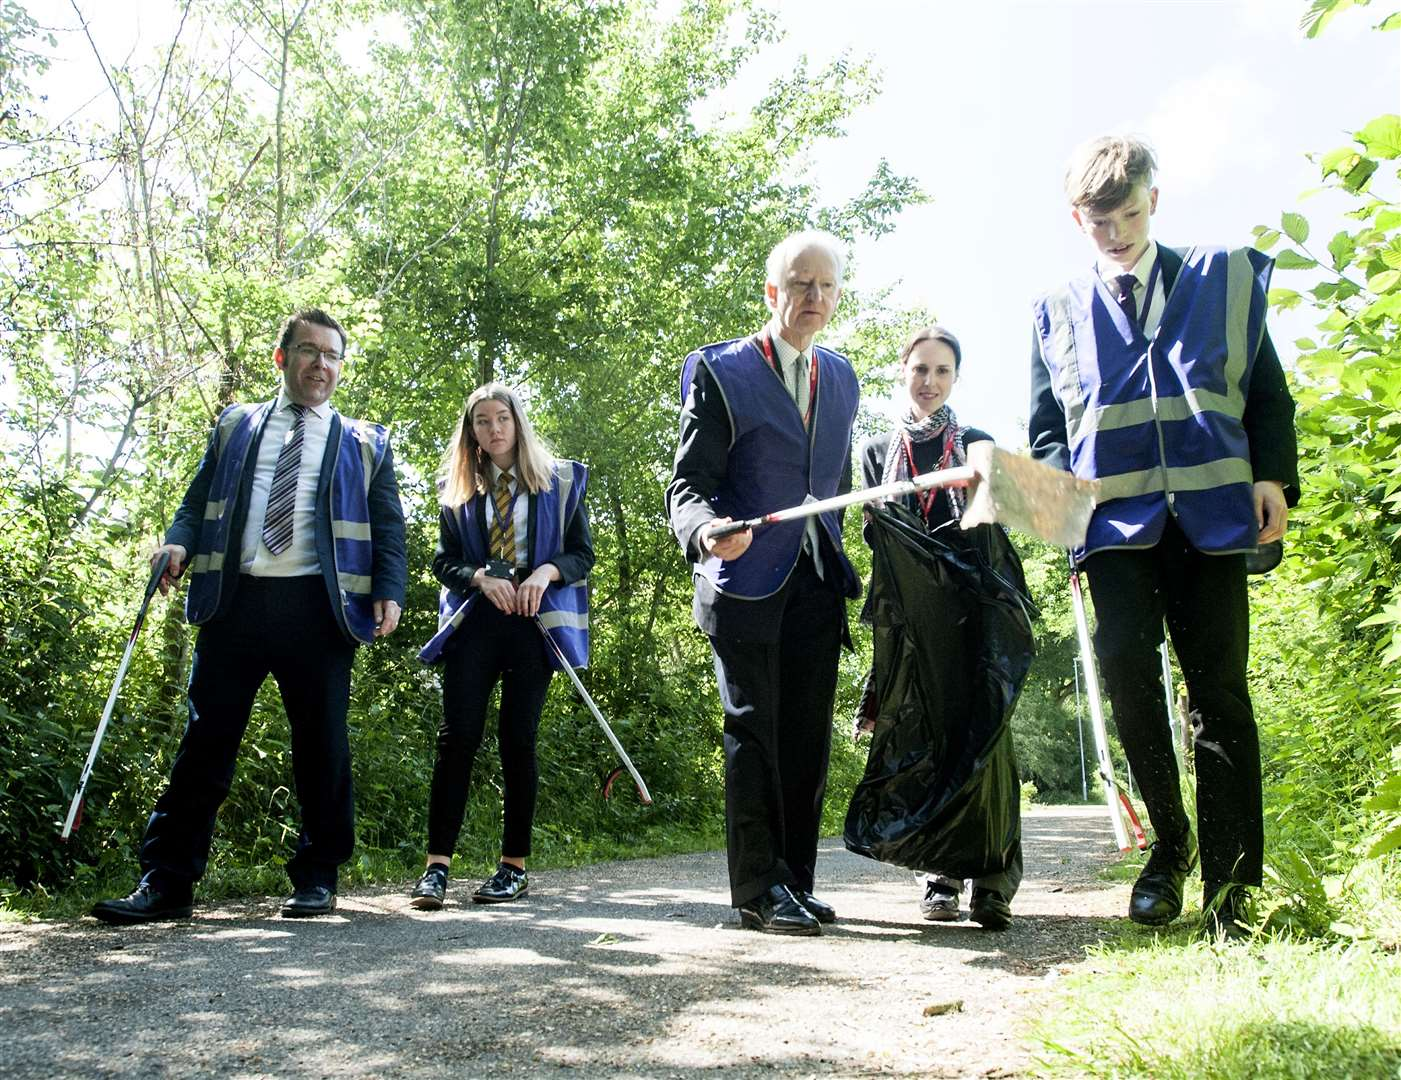 From left are Springwood Headteacher Andy Johnson, Kiera Clarke (Head Girl), MP Sir Henry Bellingham, Adele Powell and Jannis Kaulman (Head Boy)